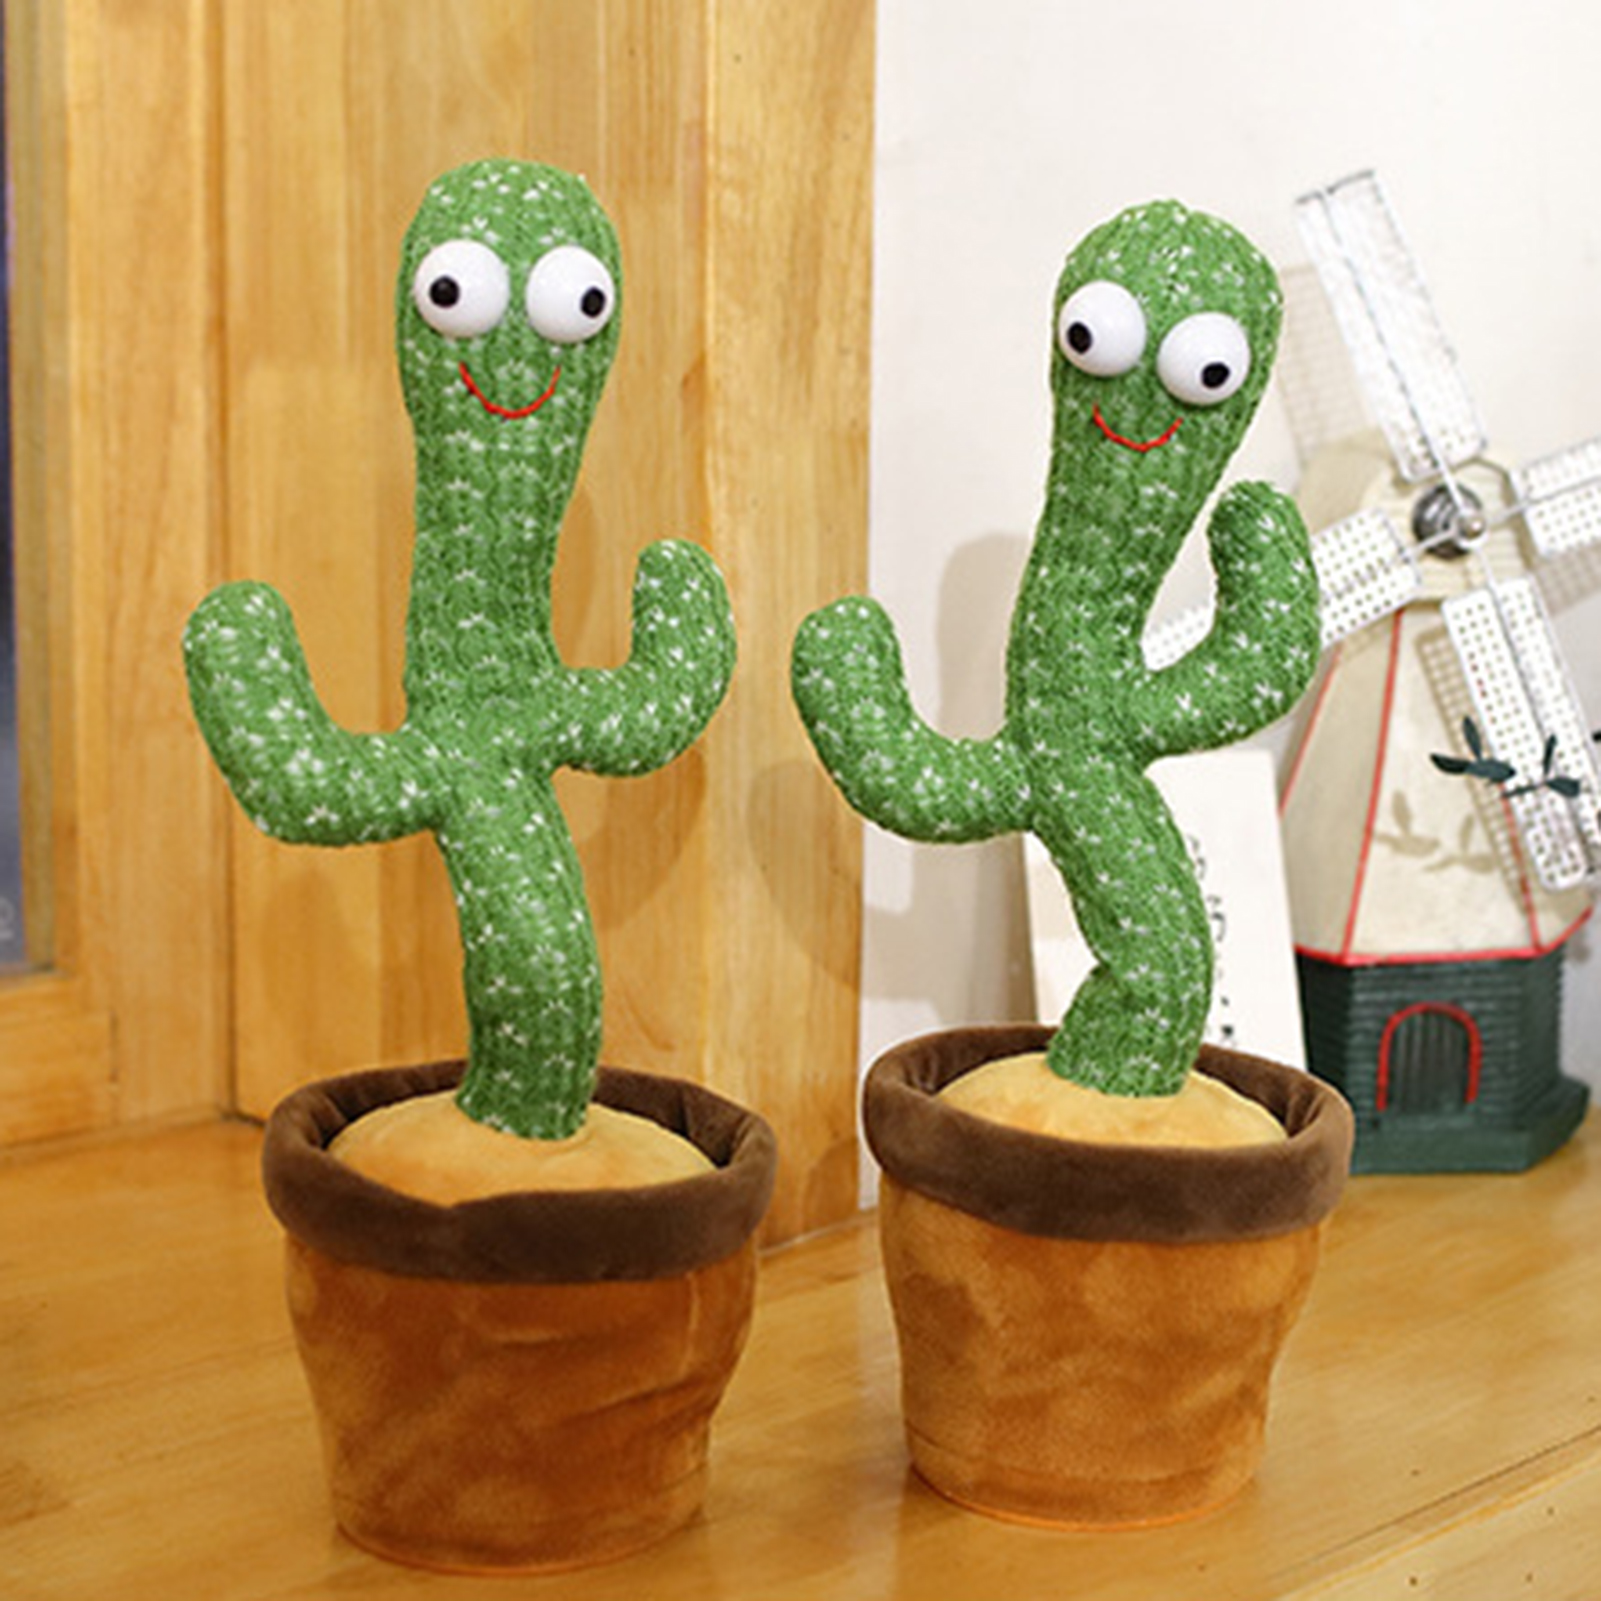 Dancing Cactus Plush Toys Funny Cute Swing Cactus Stuffed Toys Decor Learning Speak Repeat 120 Song Sing Music Lighting Soft Toy